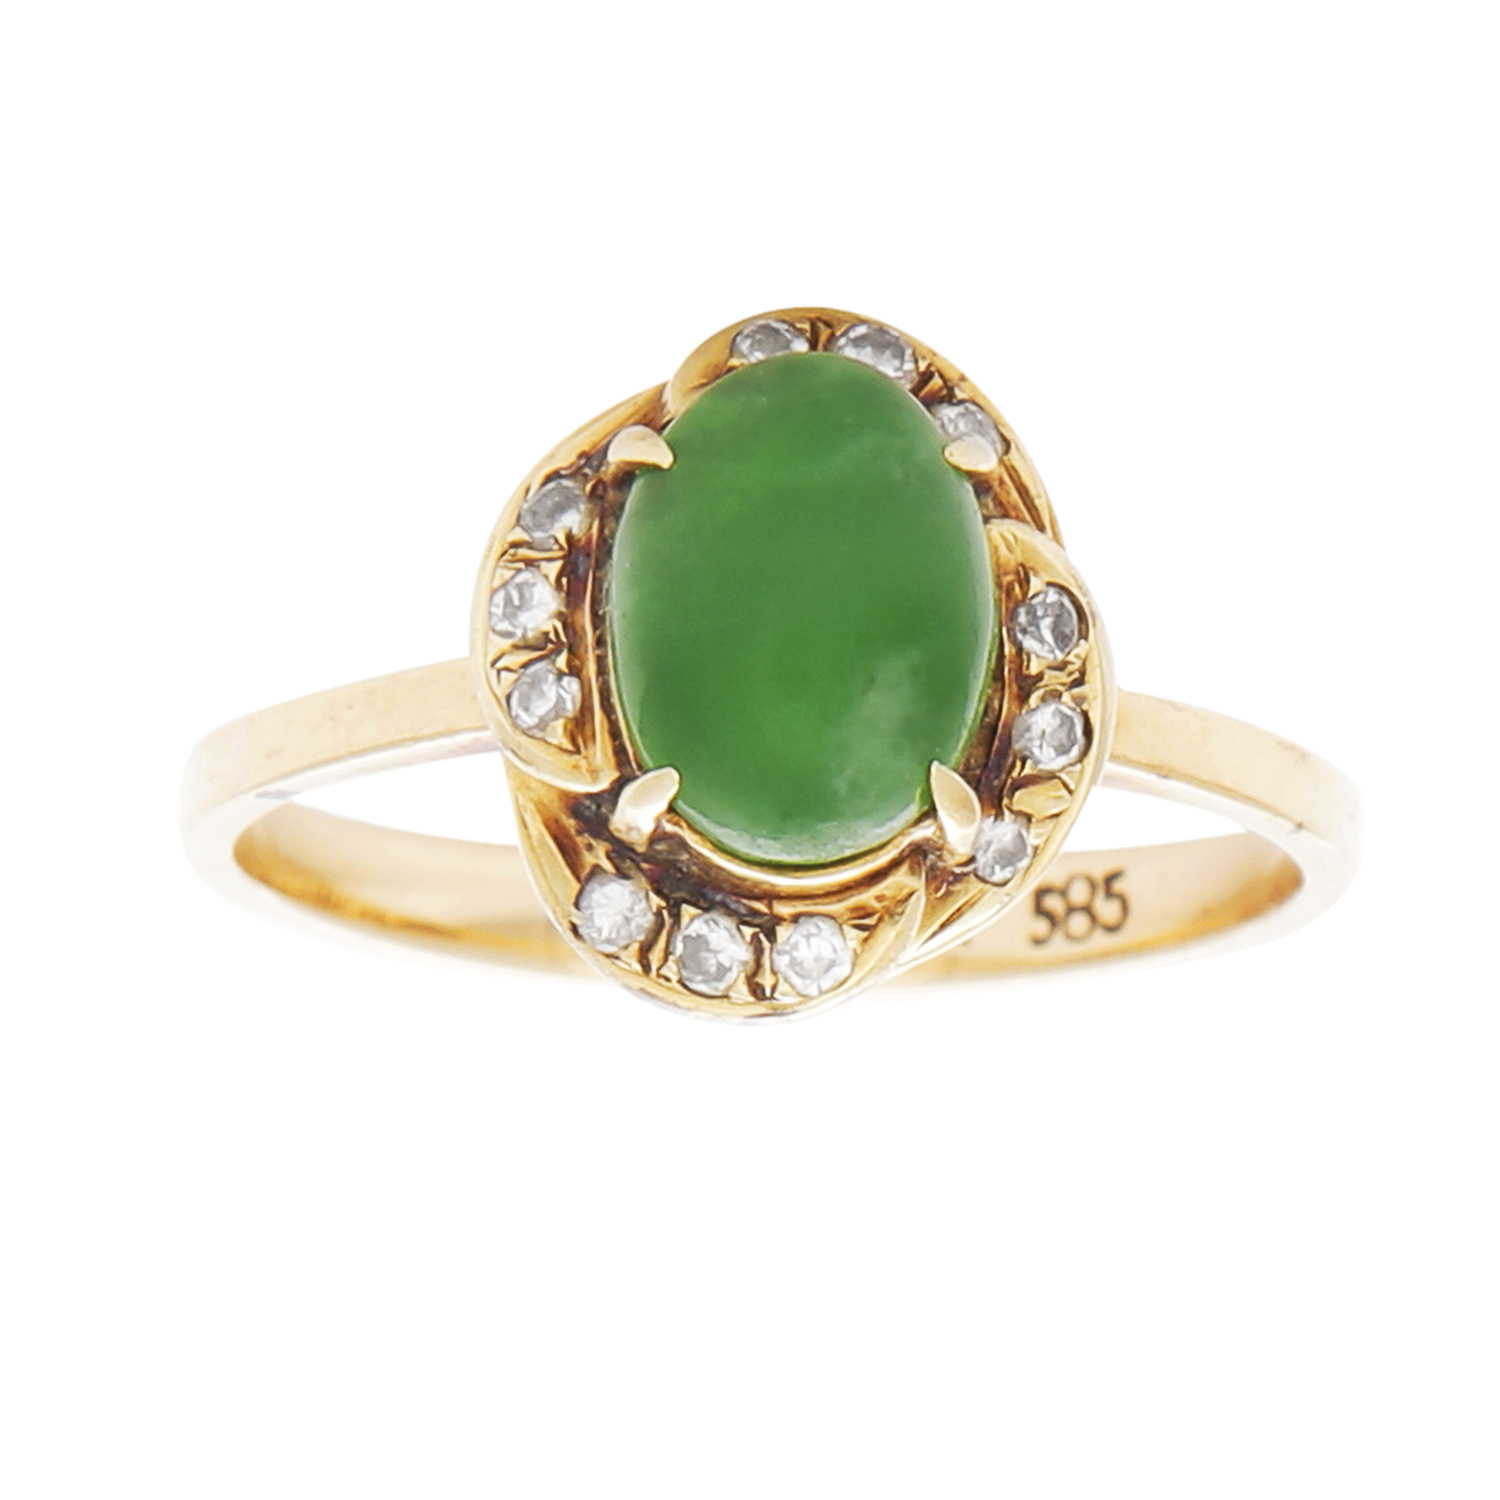 JADEITE JADE AND DIAMOND RING the oval jade cabochon within a stylised diamond border, size L / 5.